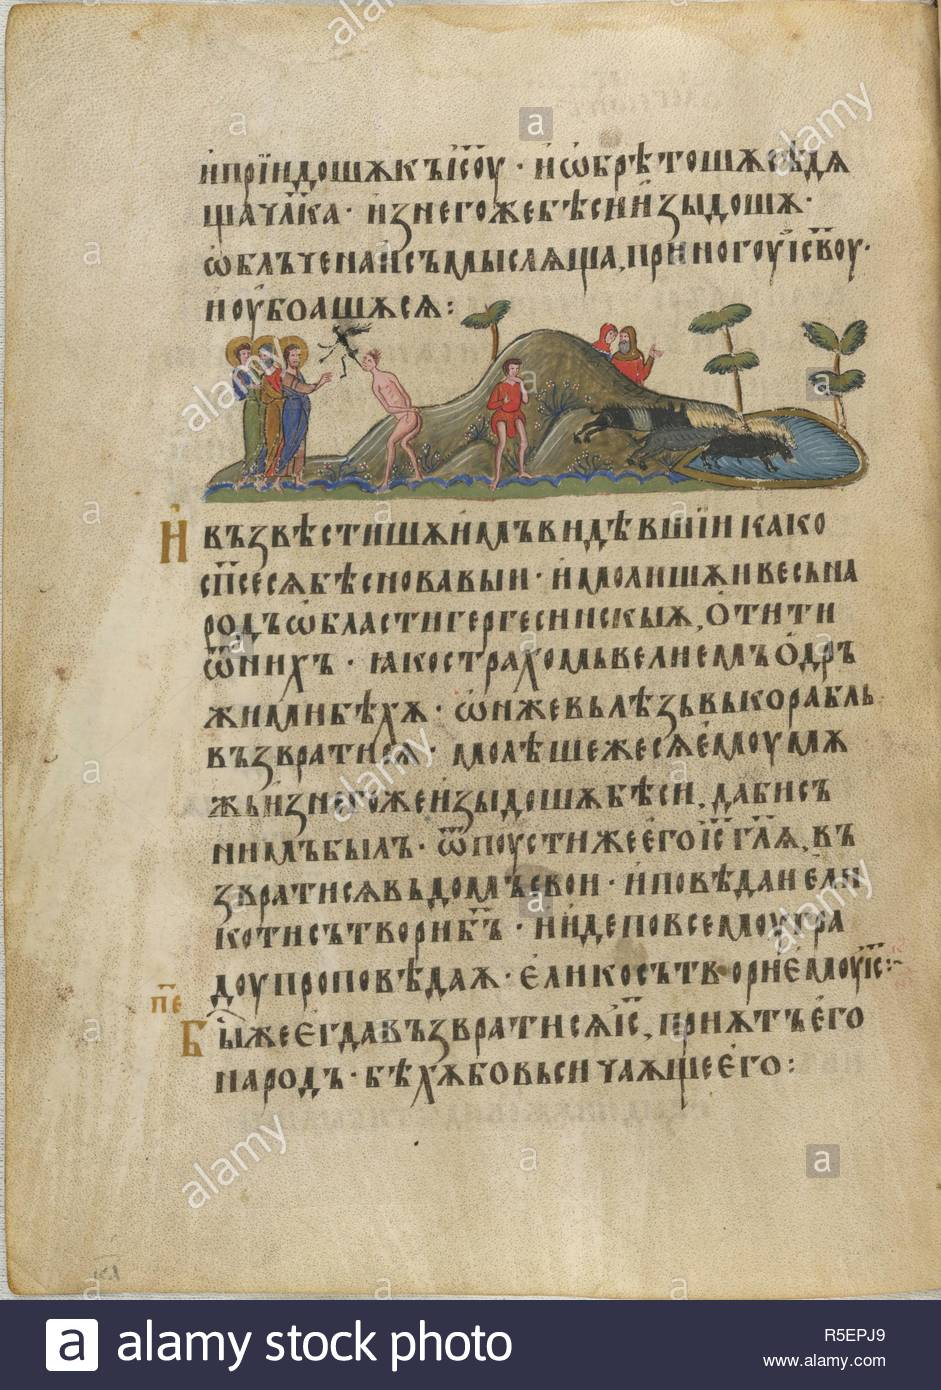 Christ and the Gadarene Swine. The Gospels of Tsar Ivan Alexander. Turnovo, 1355-1356. (Whole folio) Gospel of St Luke, chapter 8, 27-33. Christ casts out the devils from the man called Legion; the devils possess a herd of swine, who run down to the lake and are drowned. Text  Image taken from The Gospels of Tsar Ivan Alexander.  Originally published/produced in Turnovo, 1355-1356. . Source: Add. 39627, f.162v. Language: Bulgarian Church Slavonic. Author: SIMEON. Turnovo school. - Stock Image